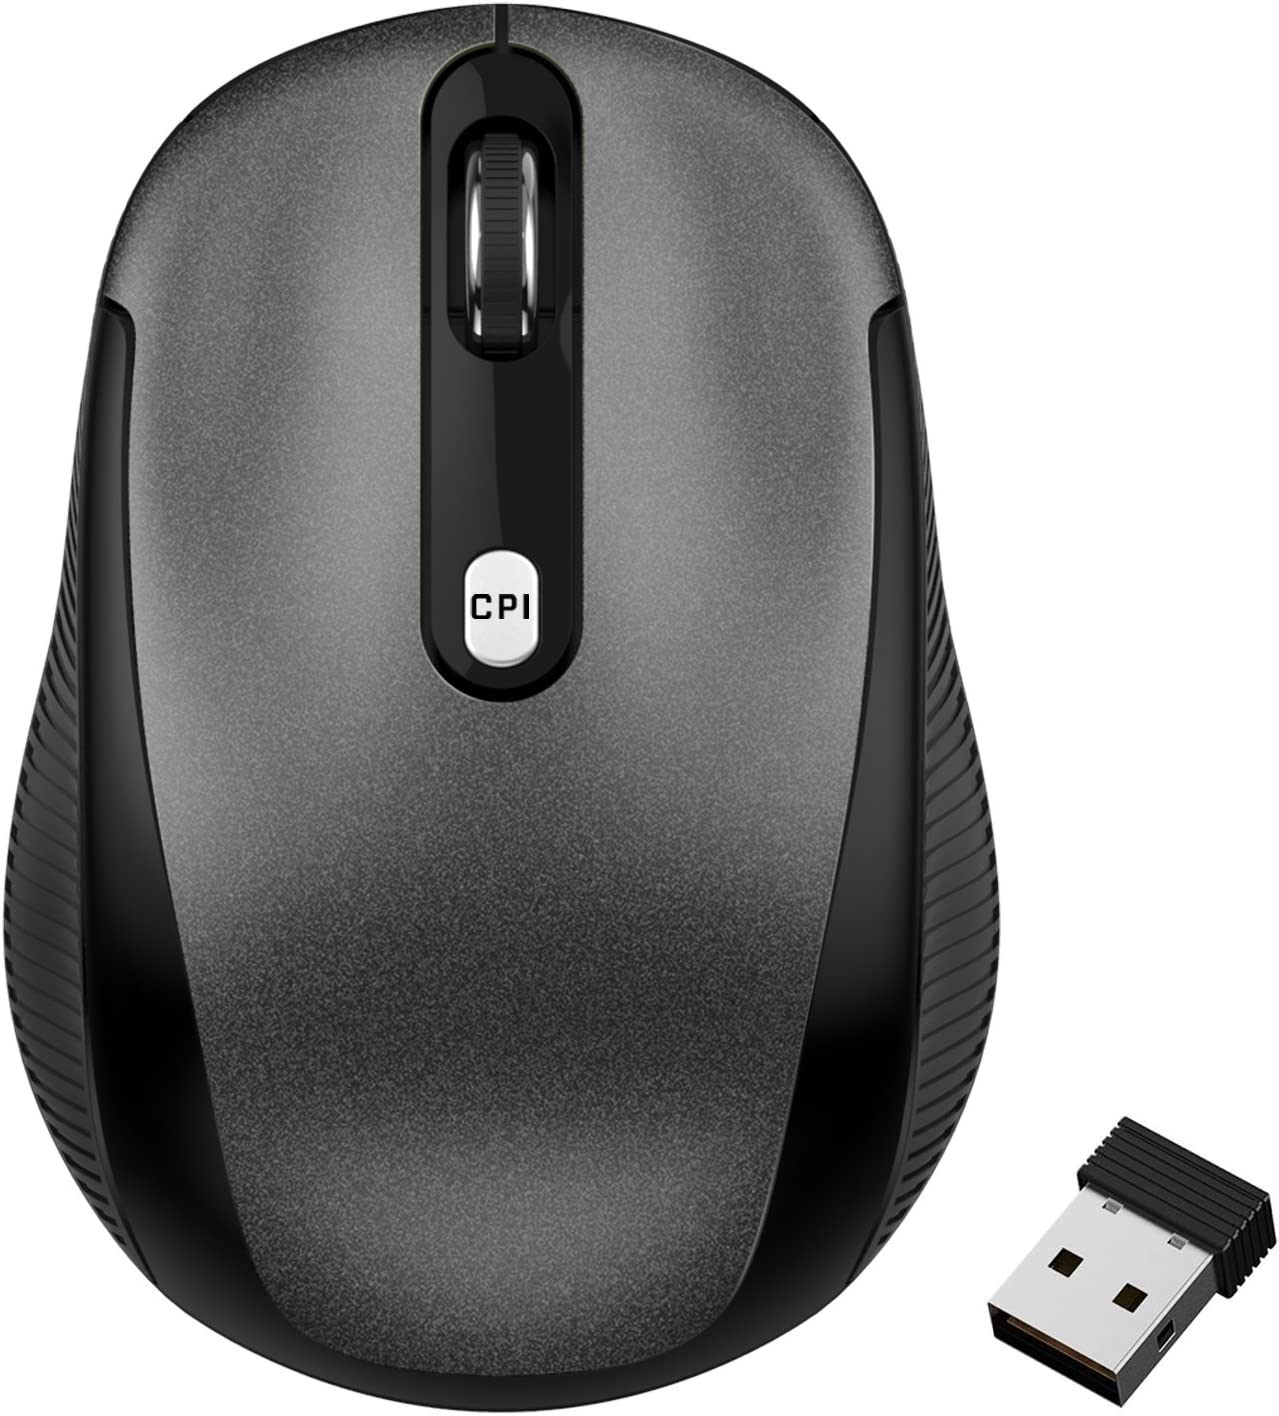 JETech 2.4Ghz Wireless Mobile Optical Mouse with 3 CPI Levels and USB Wireless Receiver (0770)